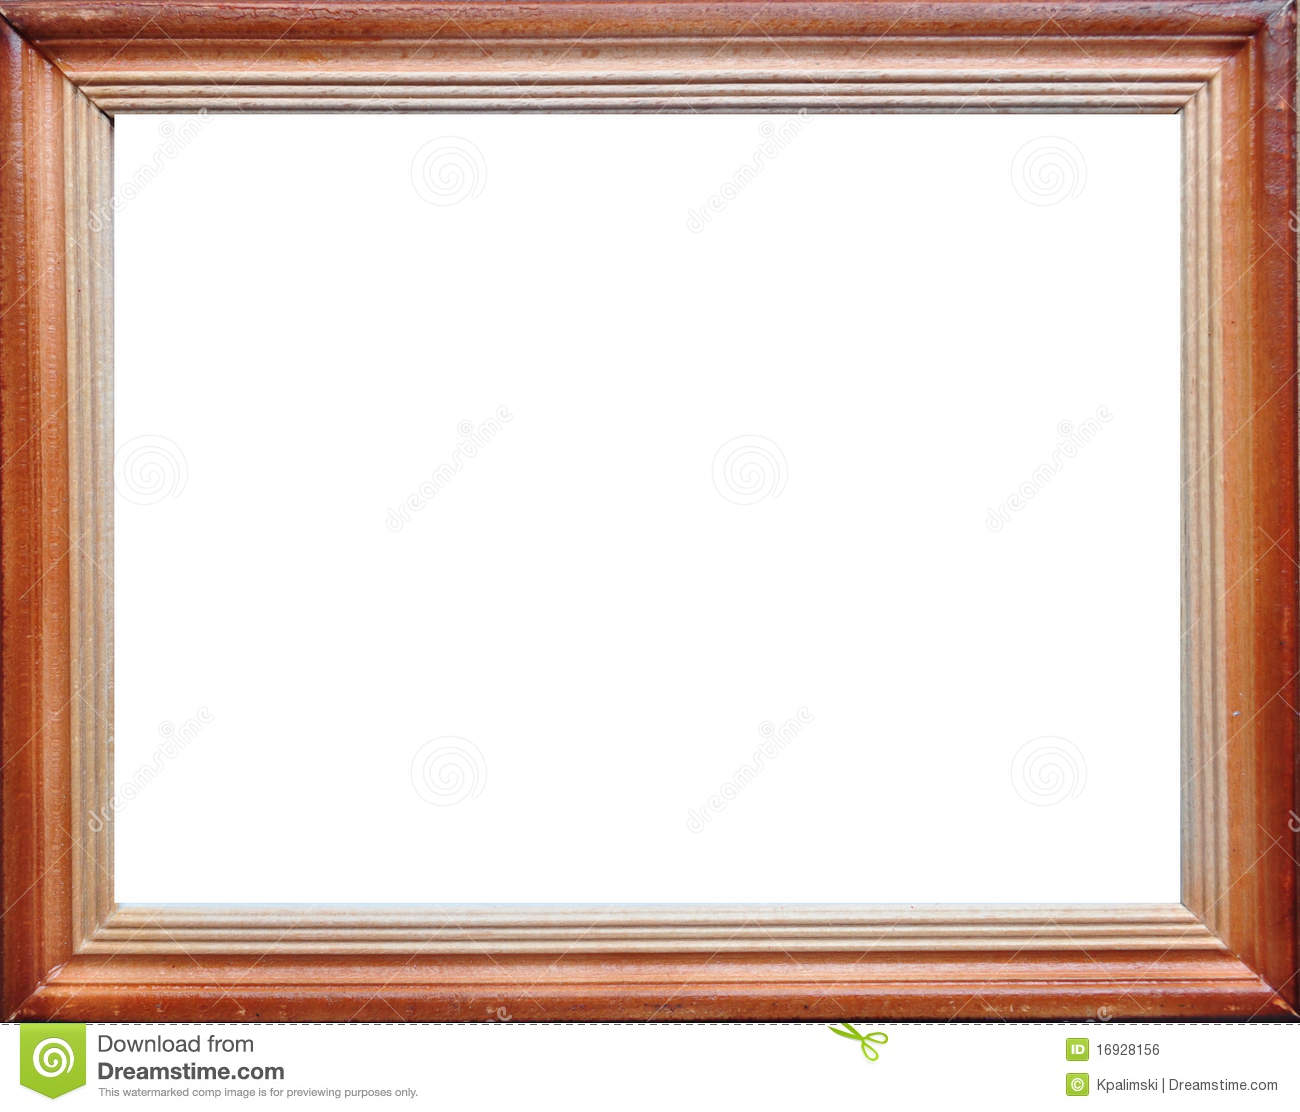 Wood Empty Frame Border Royalty Free Stock Image - Image: 16928156